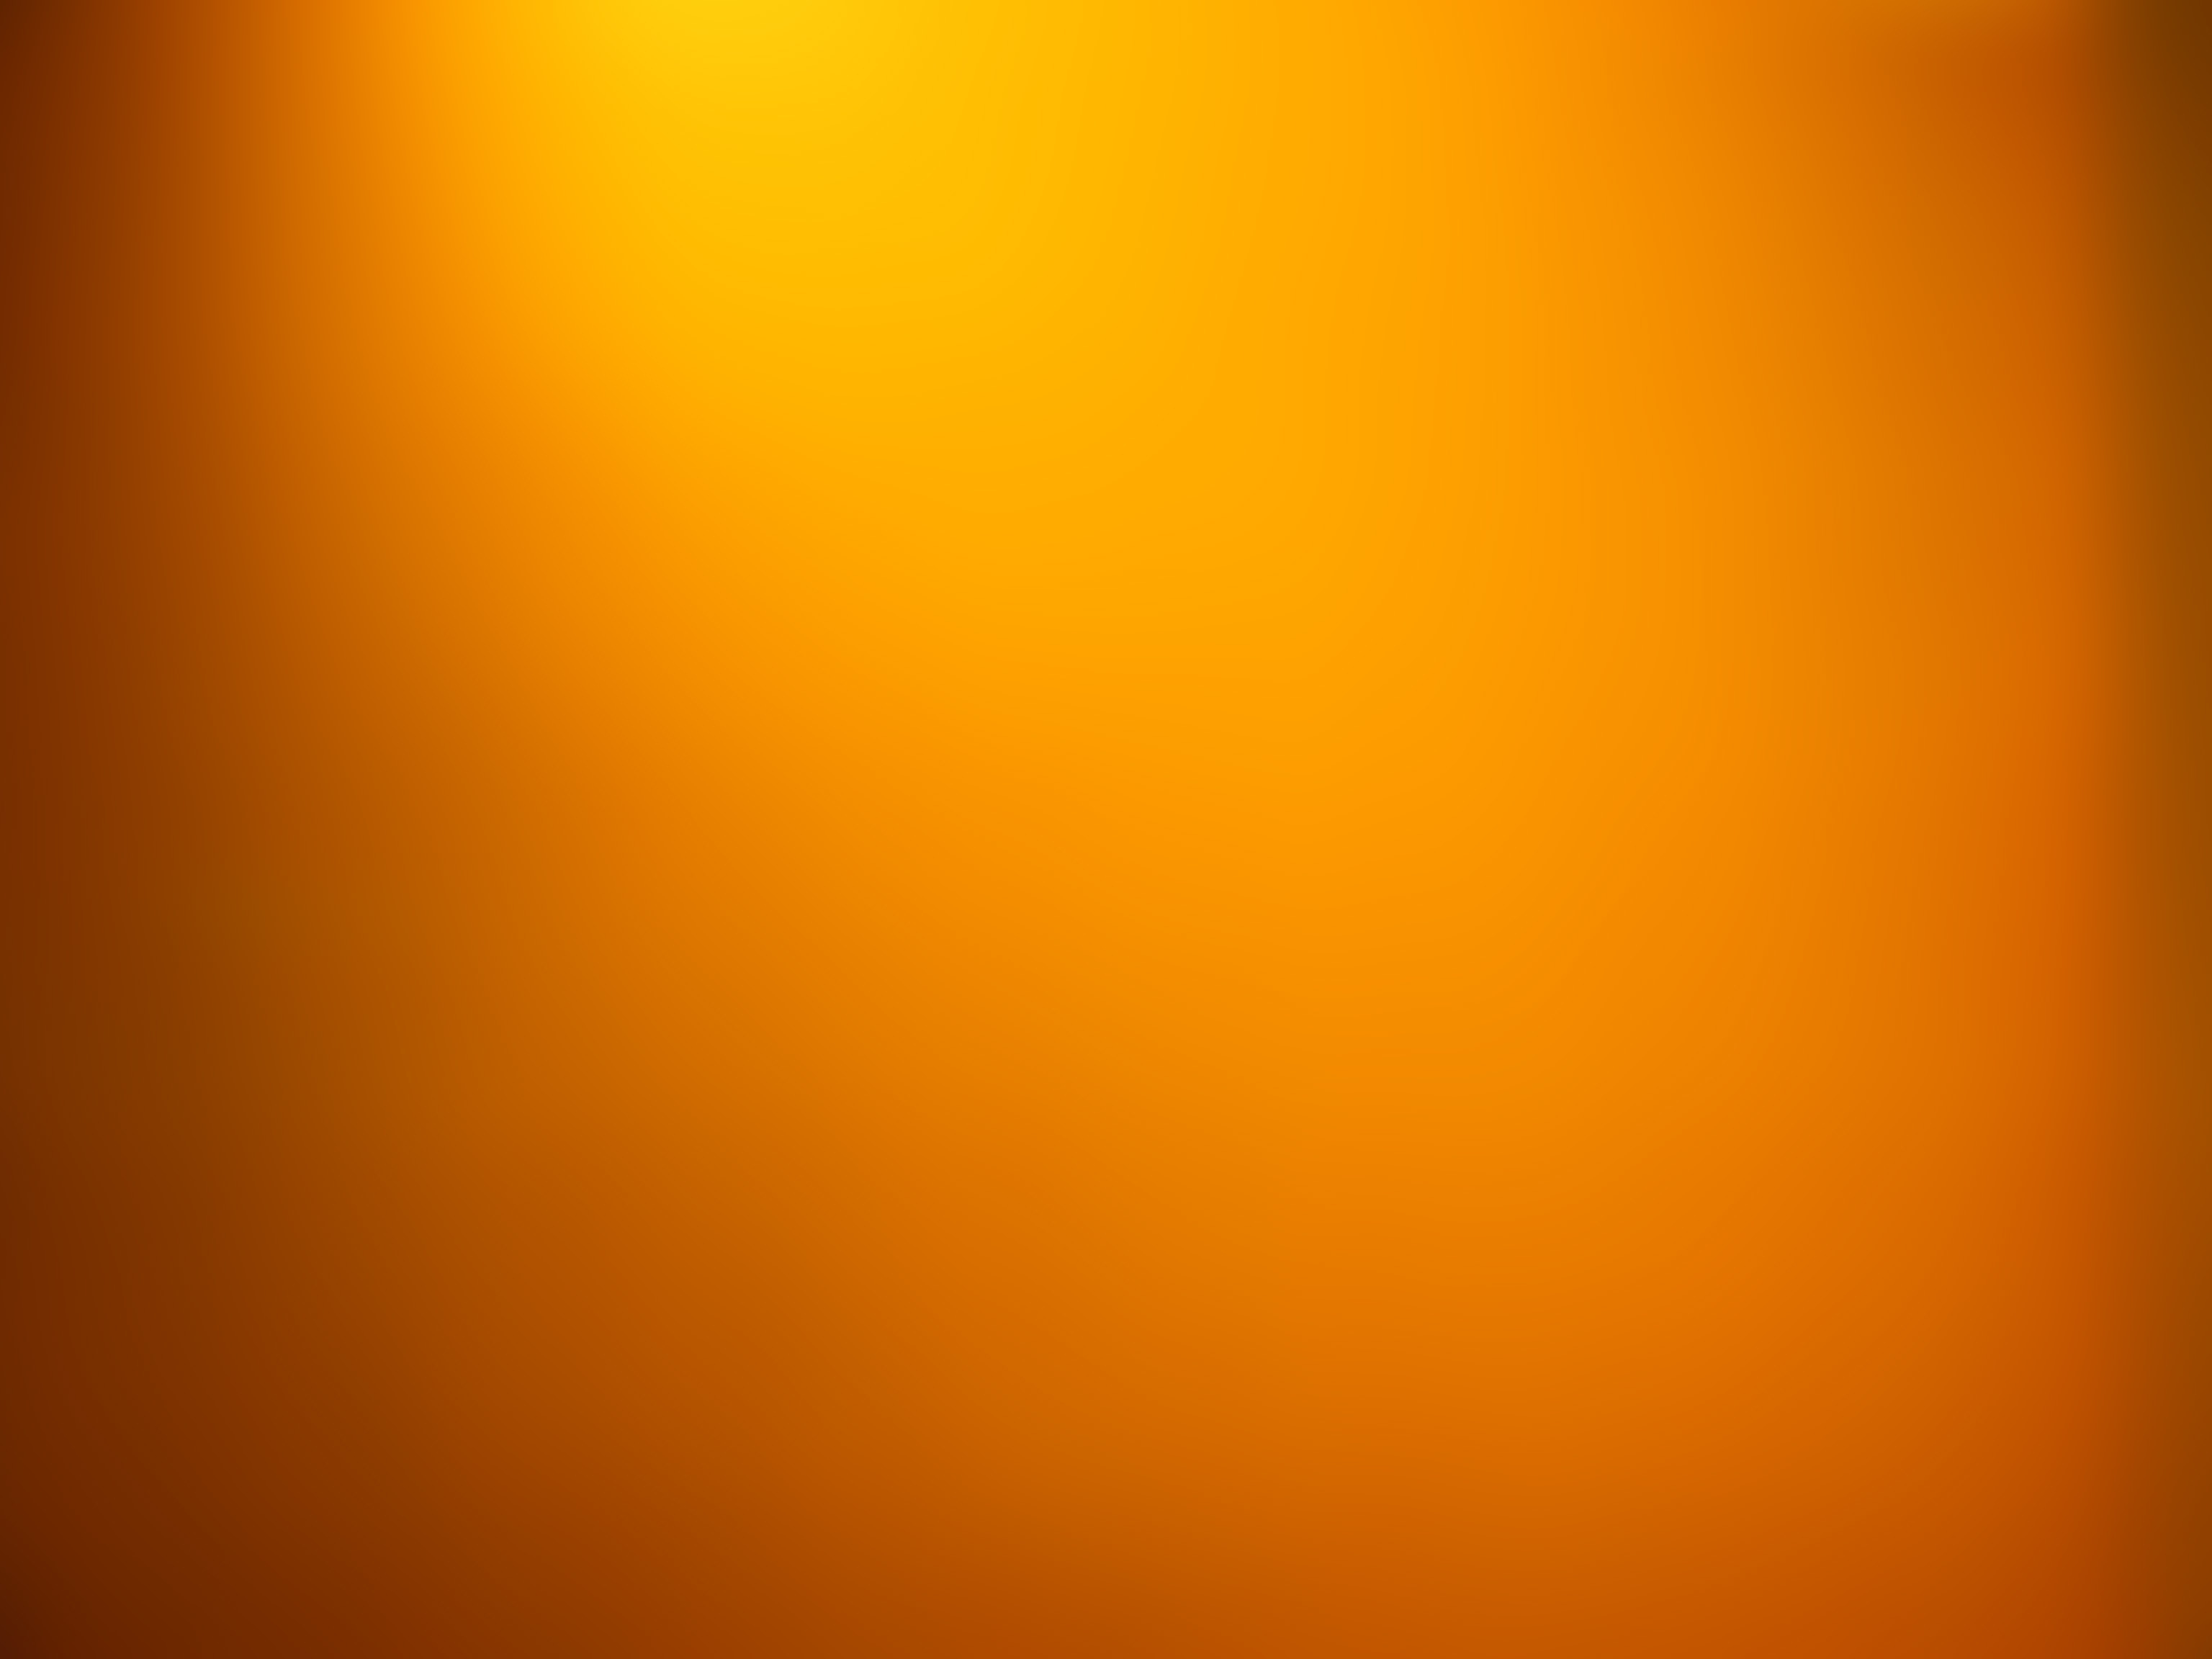 orange gaussian blur HD Wallpaper